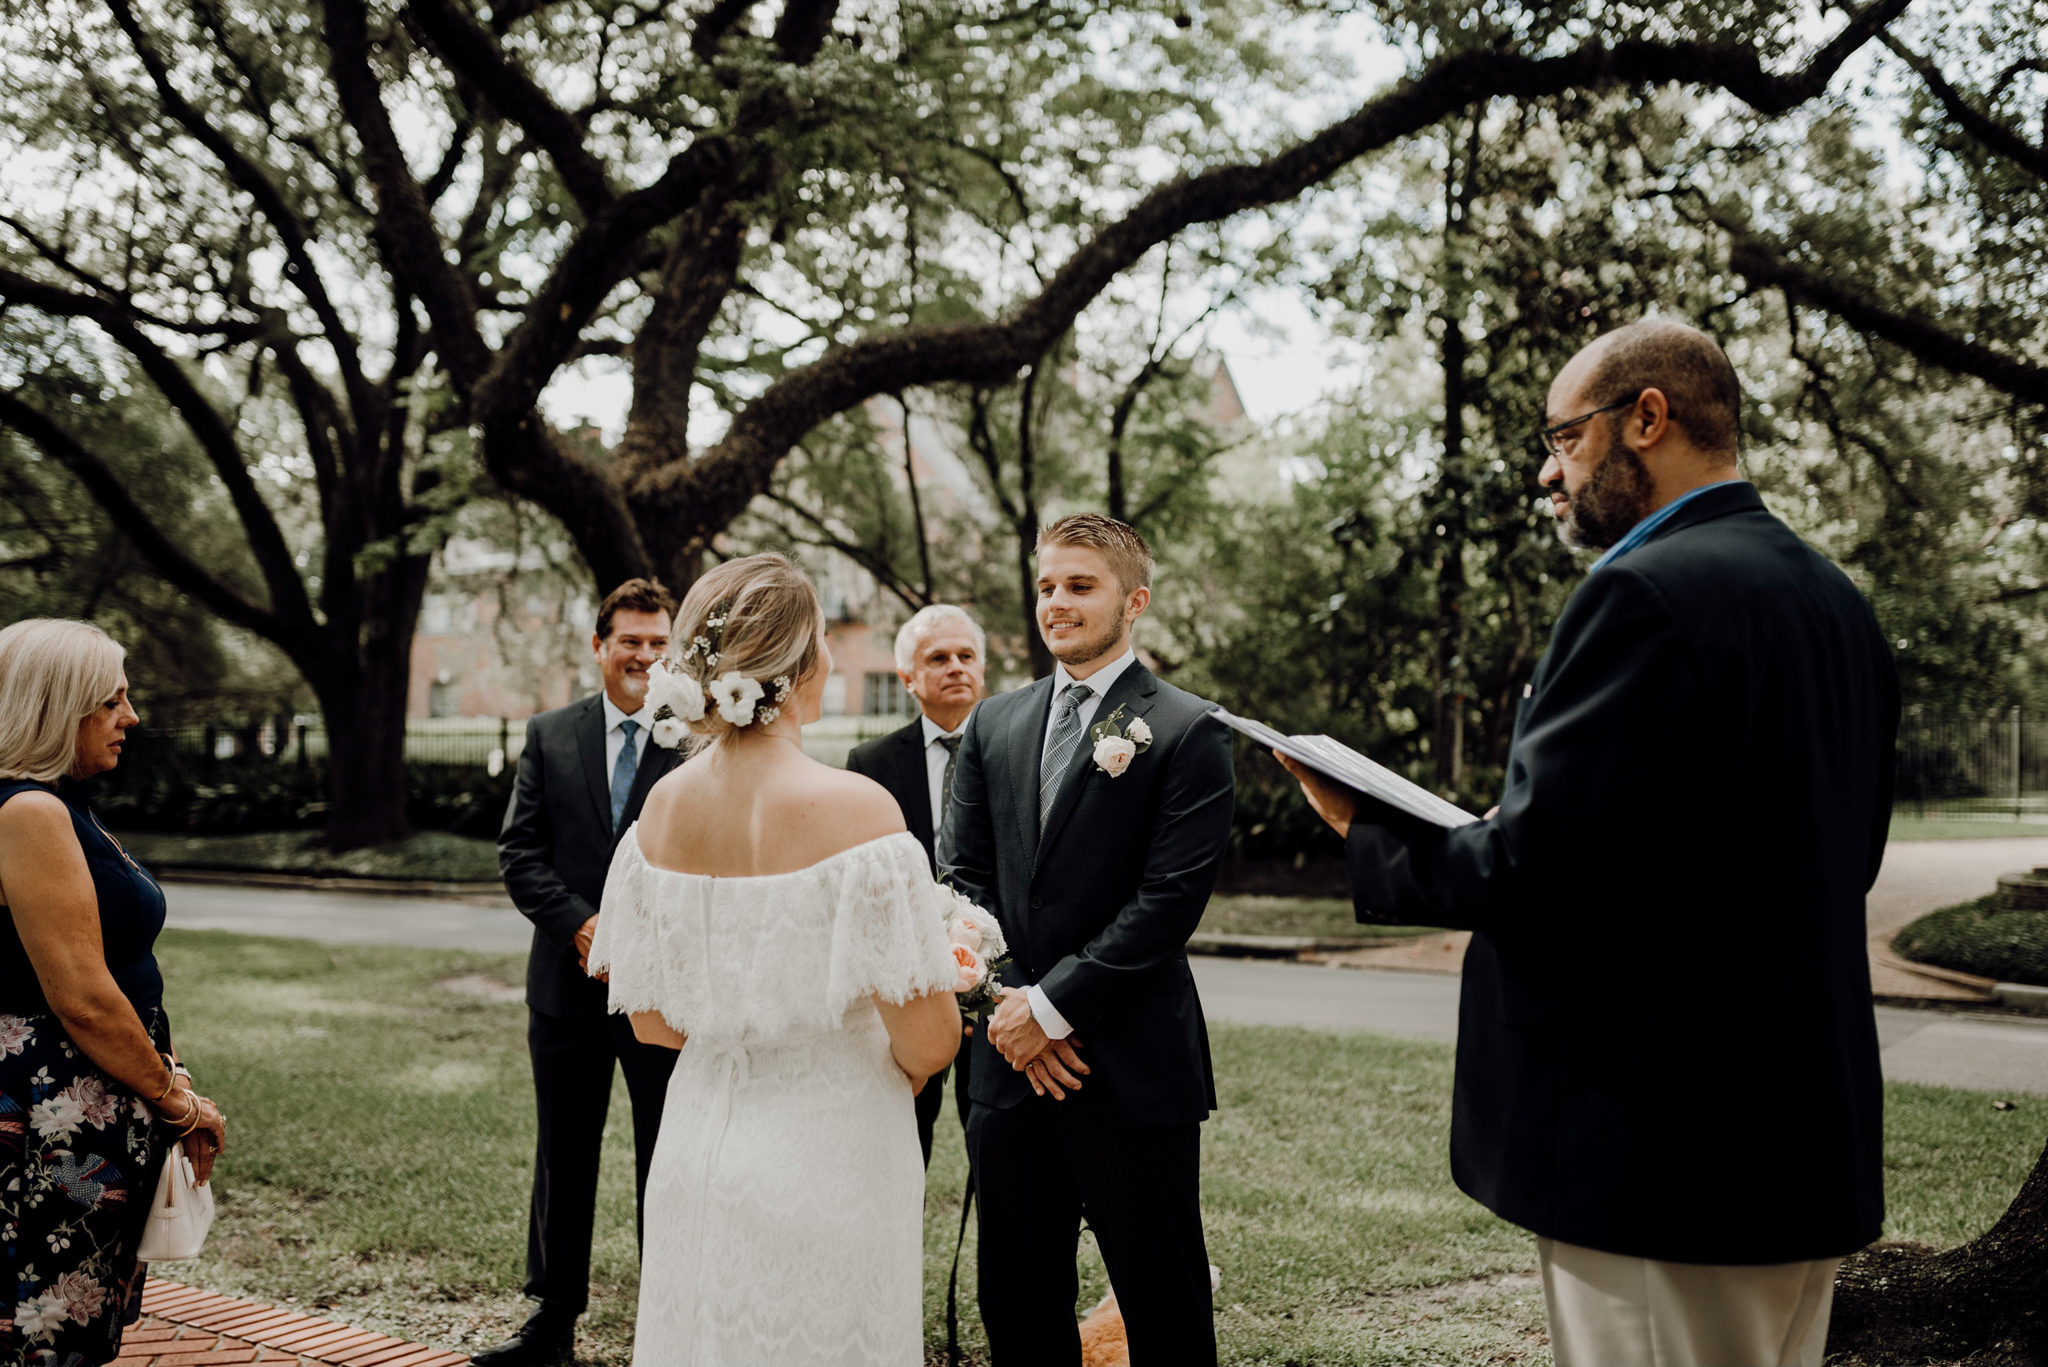 Houston Wedding Photographer-North Blvd Intimate Elopement- Houston Wedding Photographer -Kristen Giles Photography-20.jpg